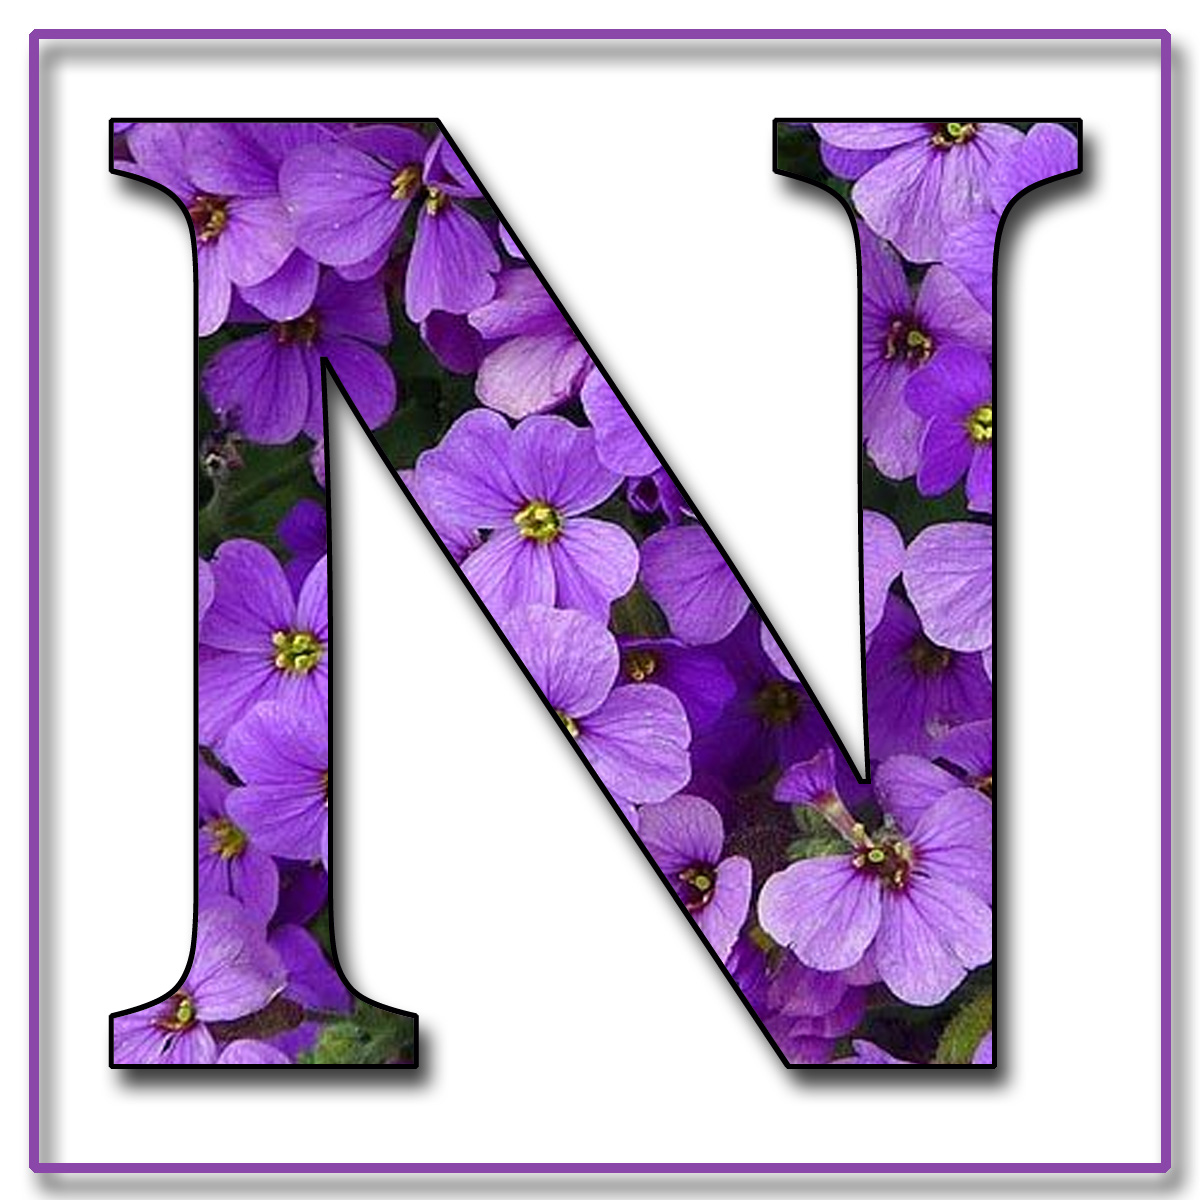 The letter c in purple